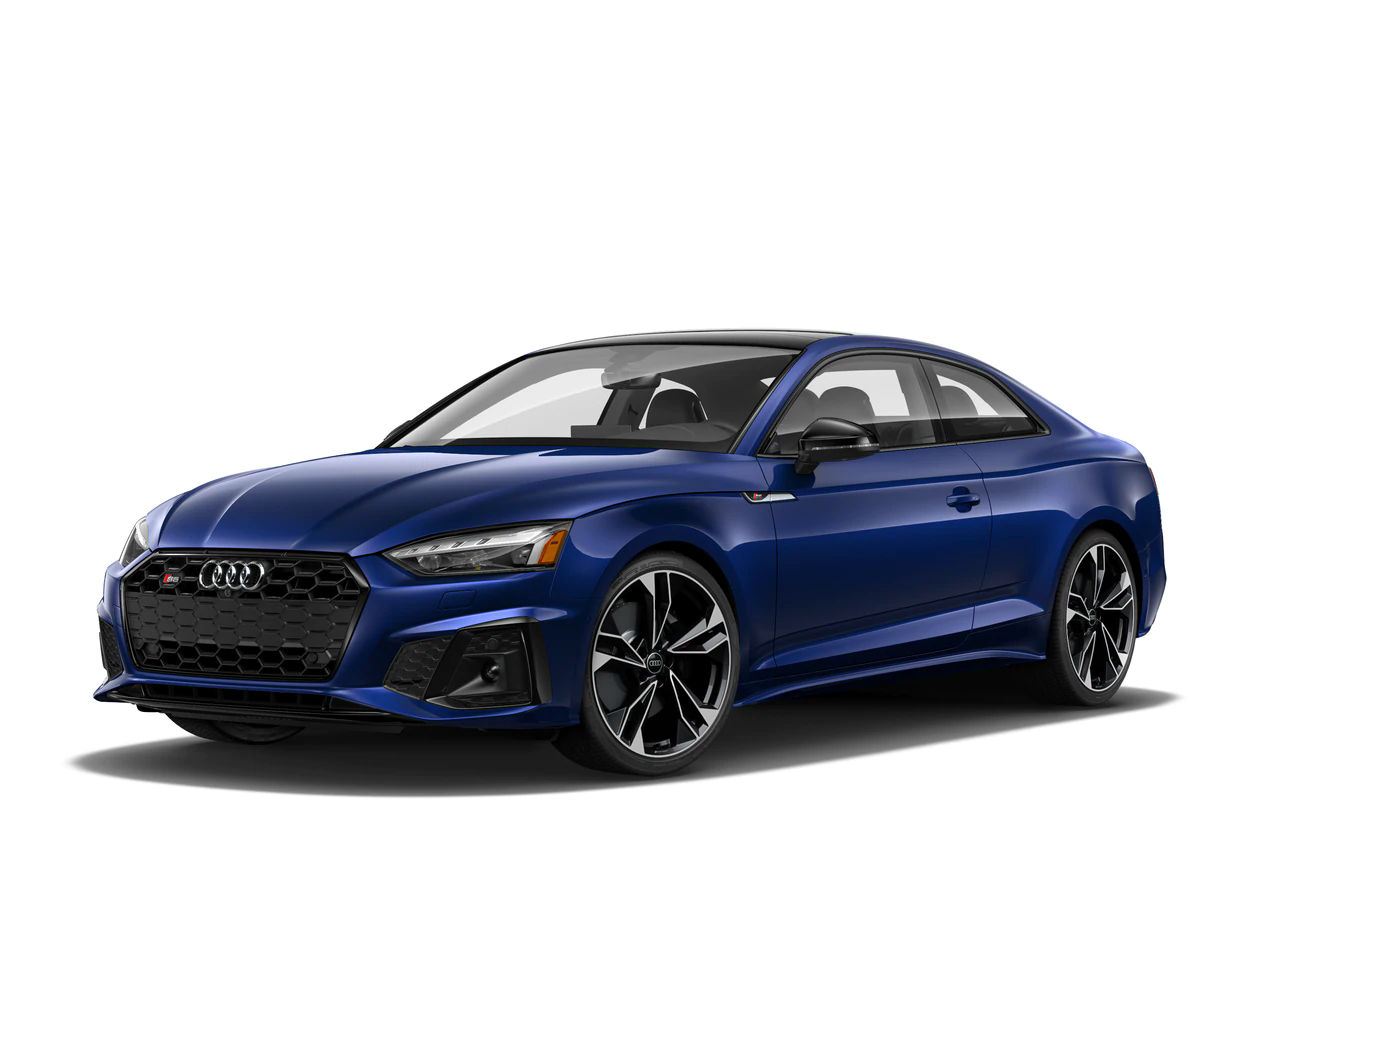 Get to Know the 2021 Audi S5 Today at Thelen Audi in Bay City